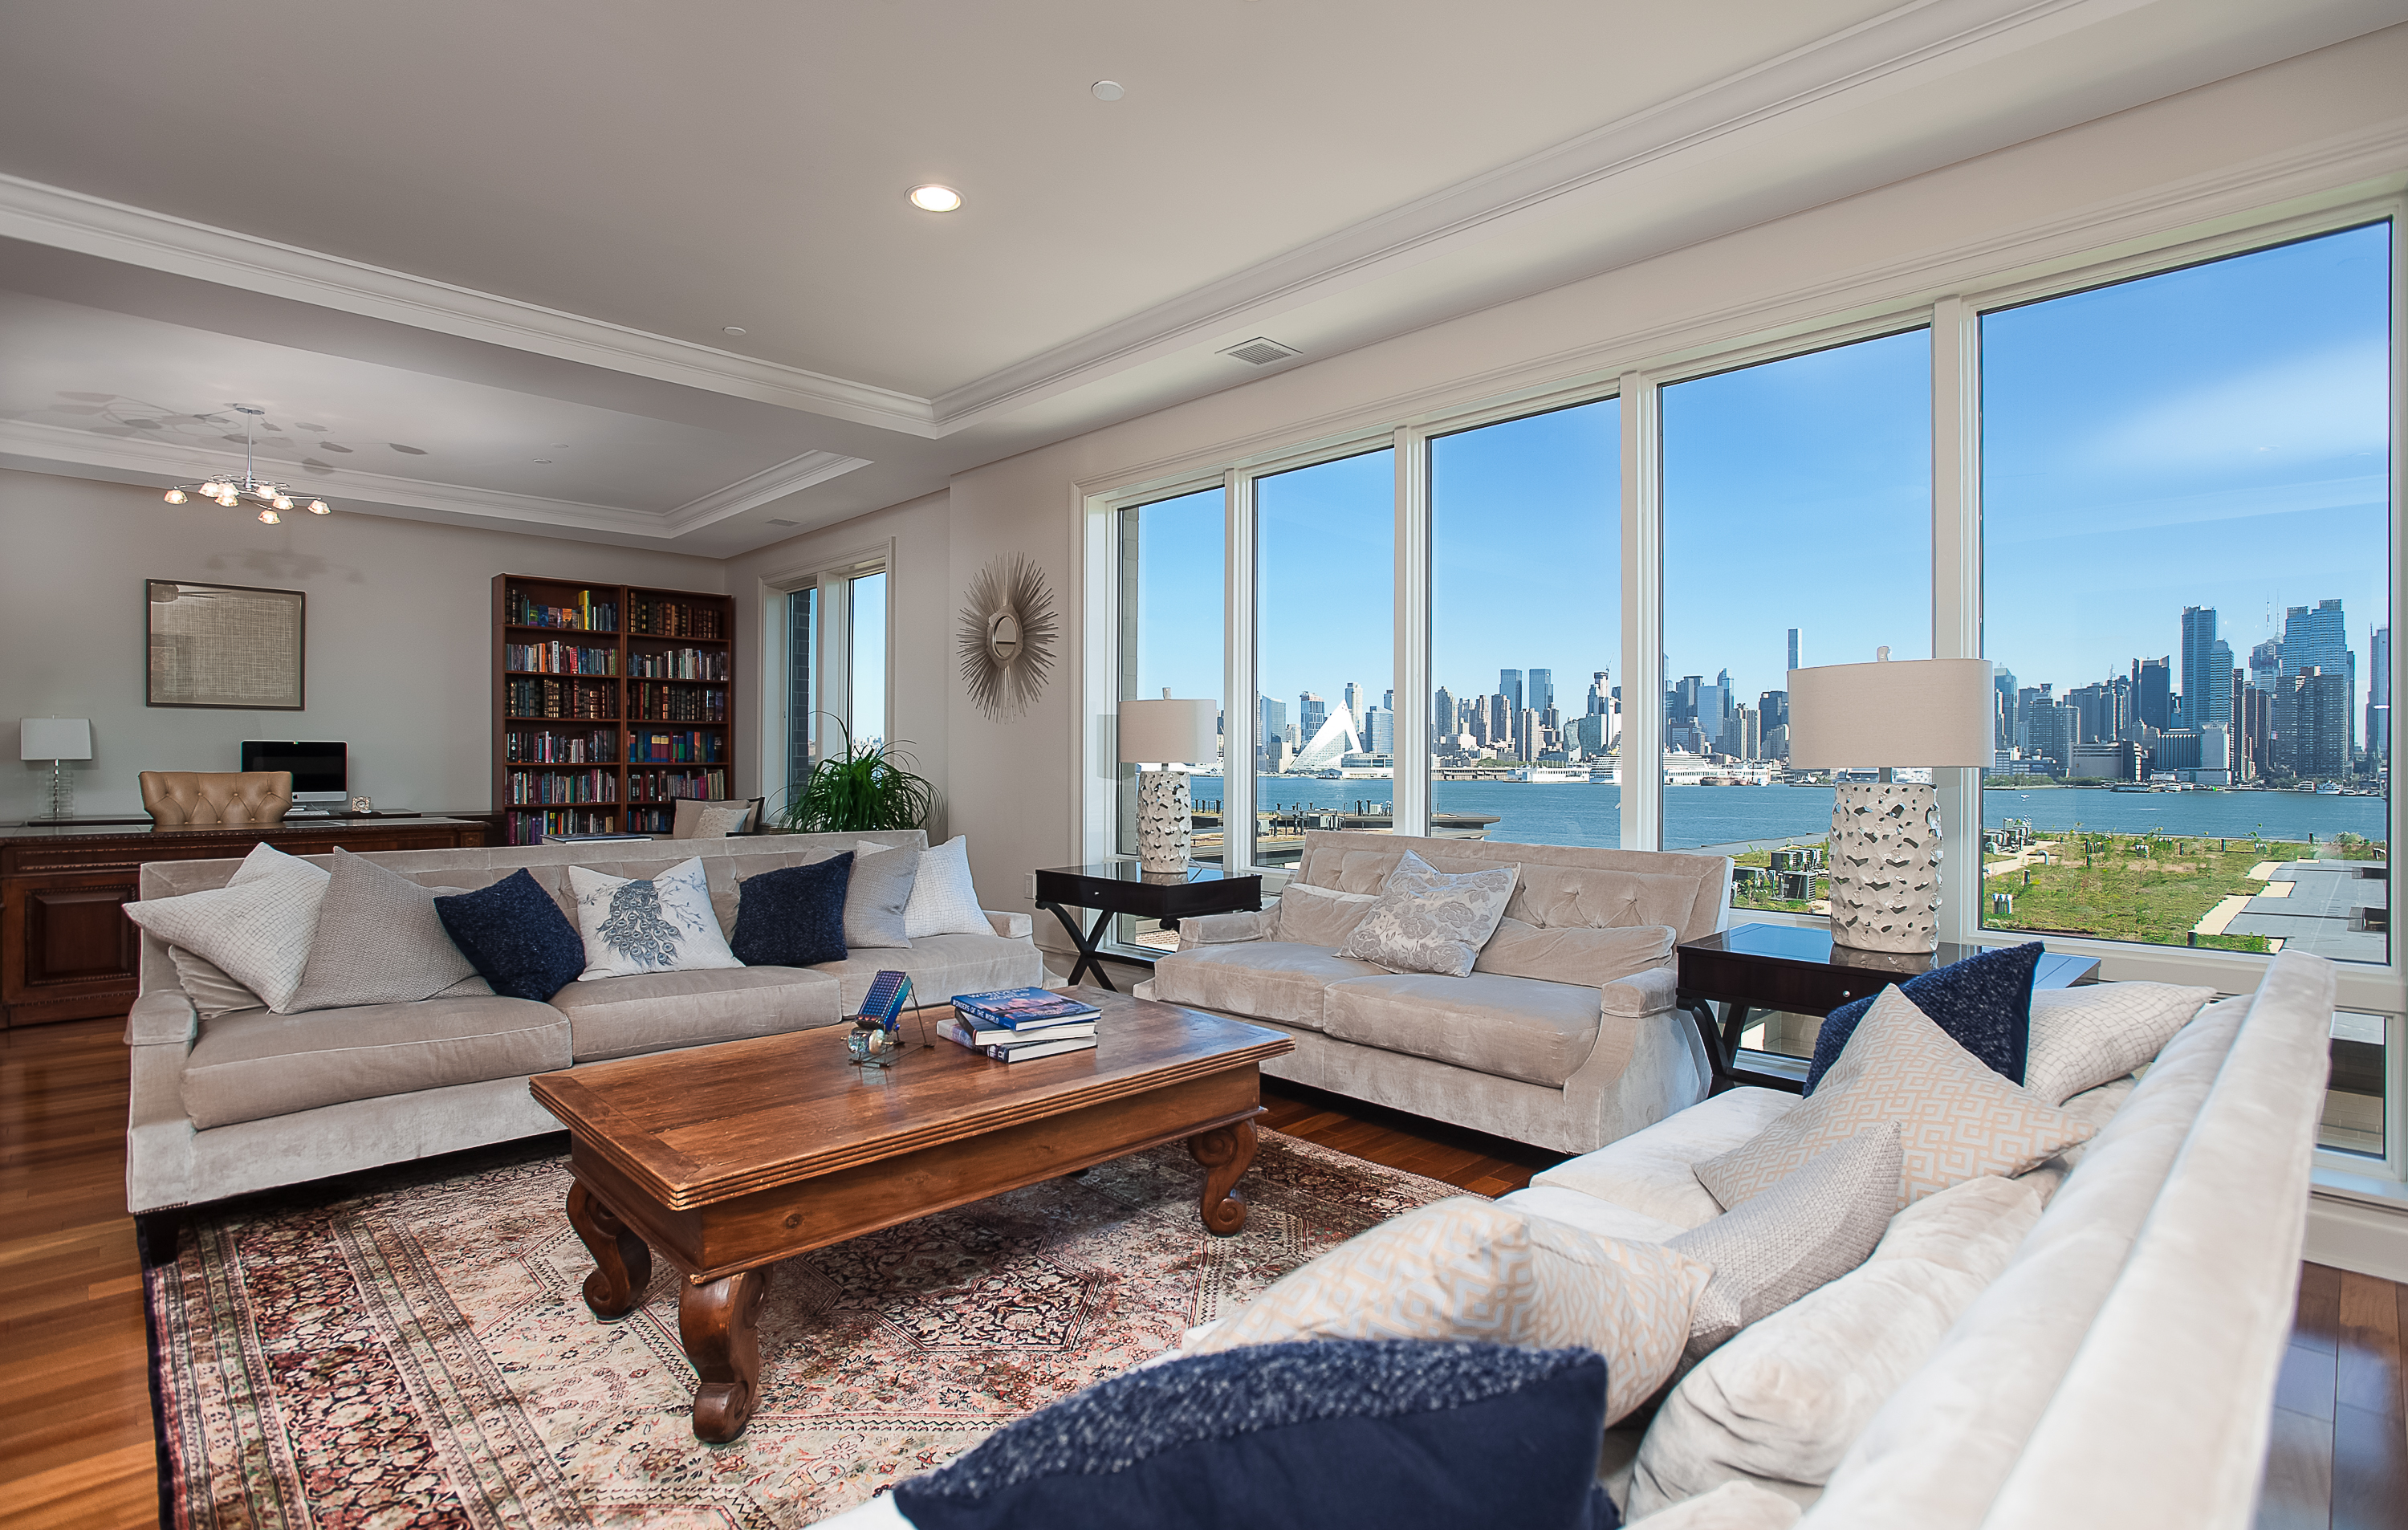 Condominium for Sale at Stunning Penthouse Views at Henley on the Hudson 61 Eton Row Weehawken, New Jersey, 07086 United States